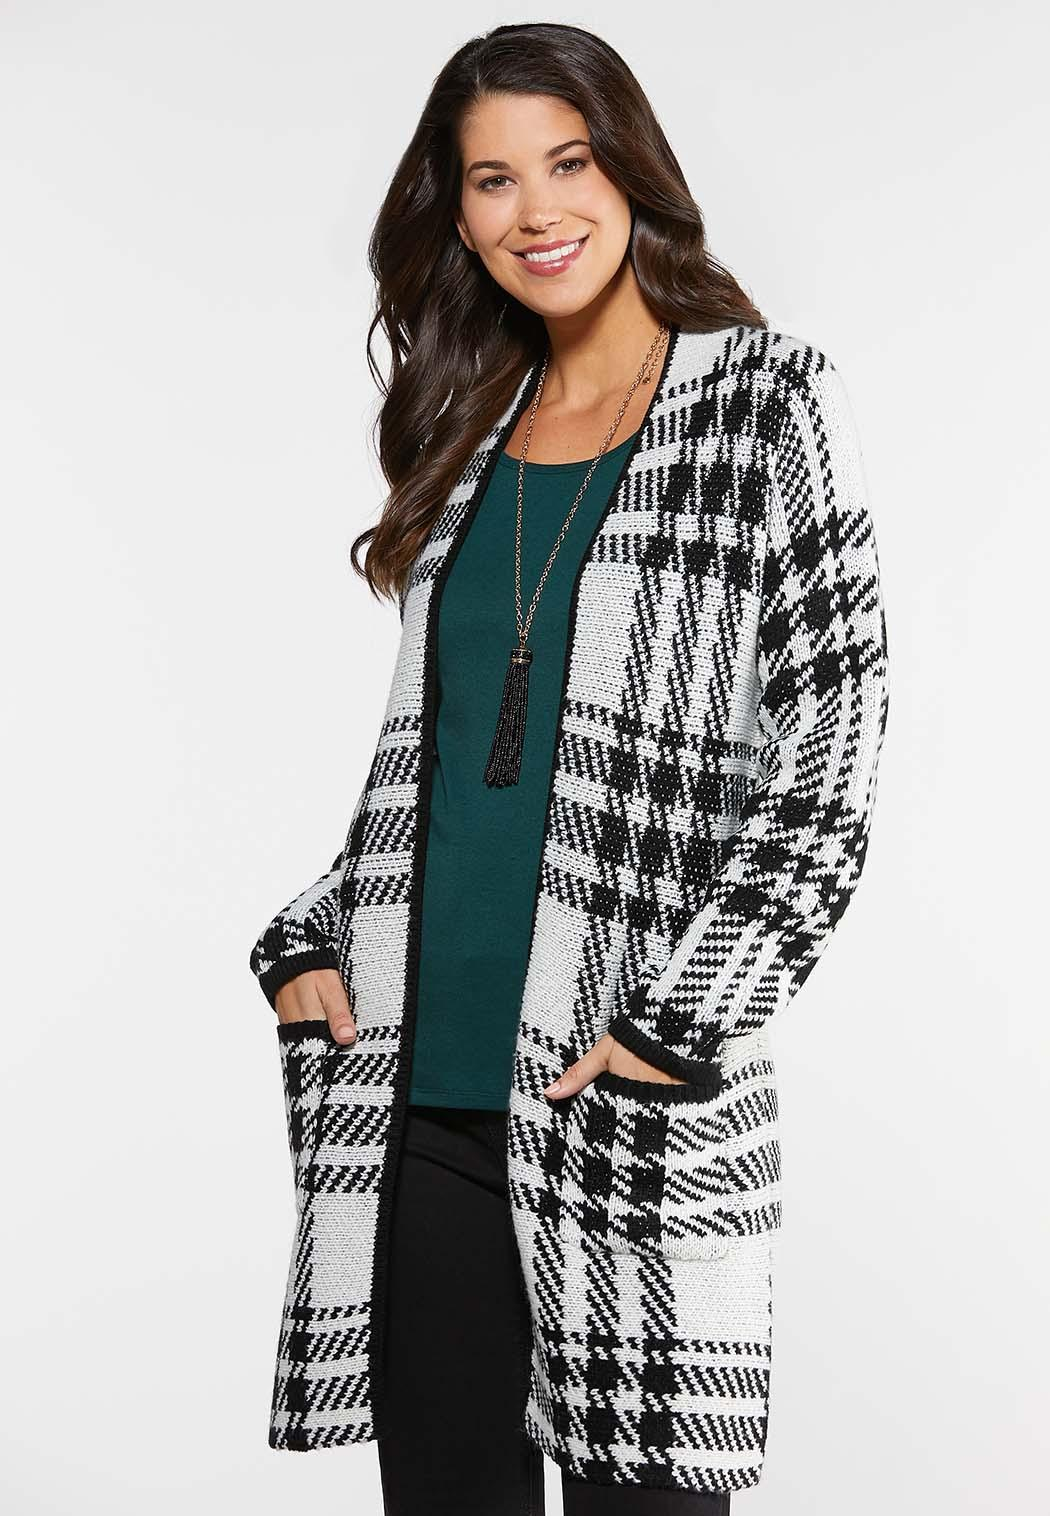 Plus Size Black And White Cardigan Sweater